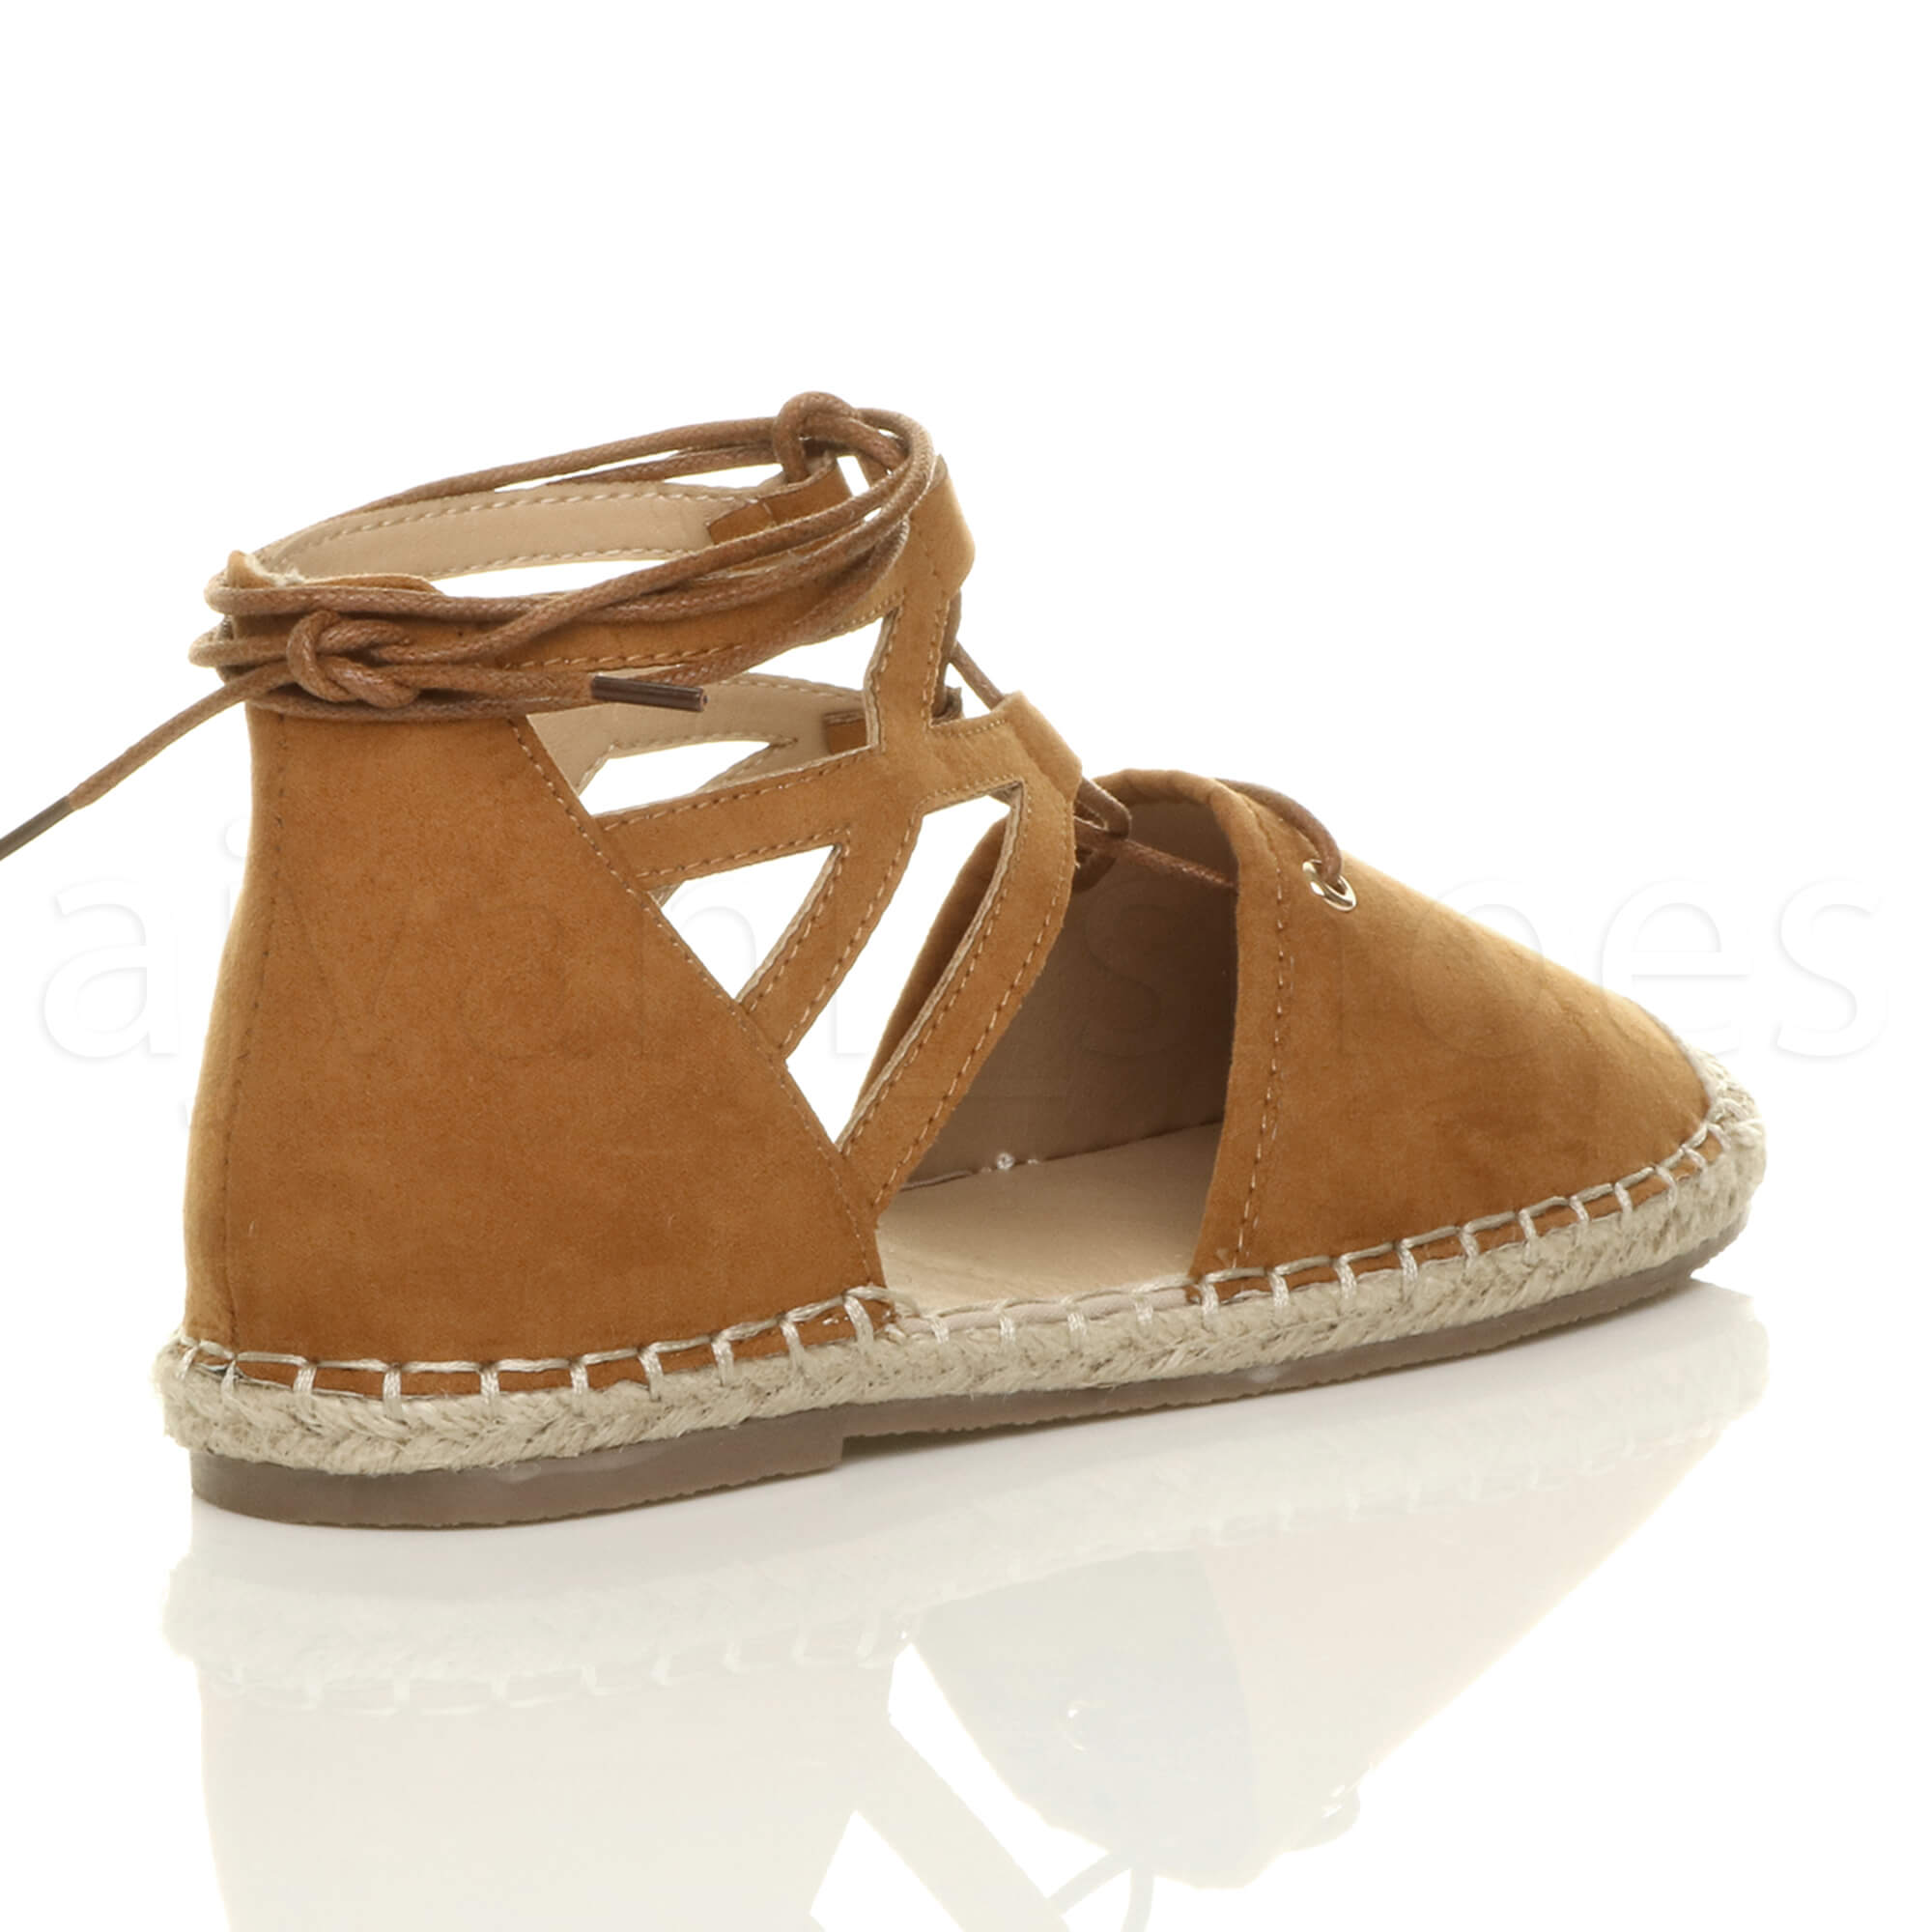 WOMENS-LADIES-FLAT-LACE-UP-GHILLIE-CUT-OUT-ESPADRILLES-SUMMER-SHOES-SANDALS-SIZE